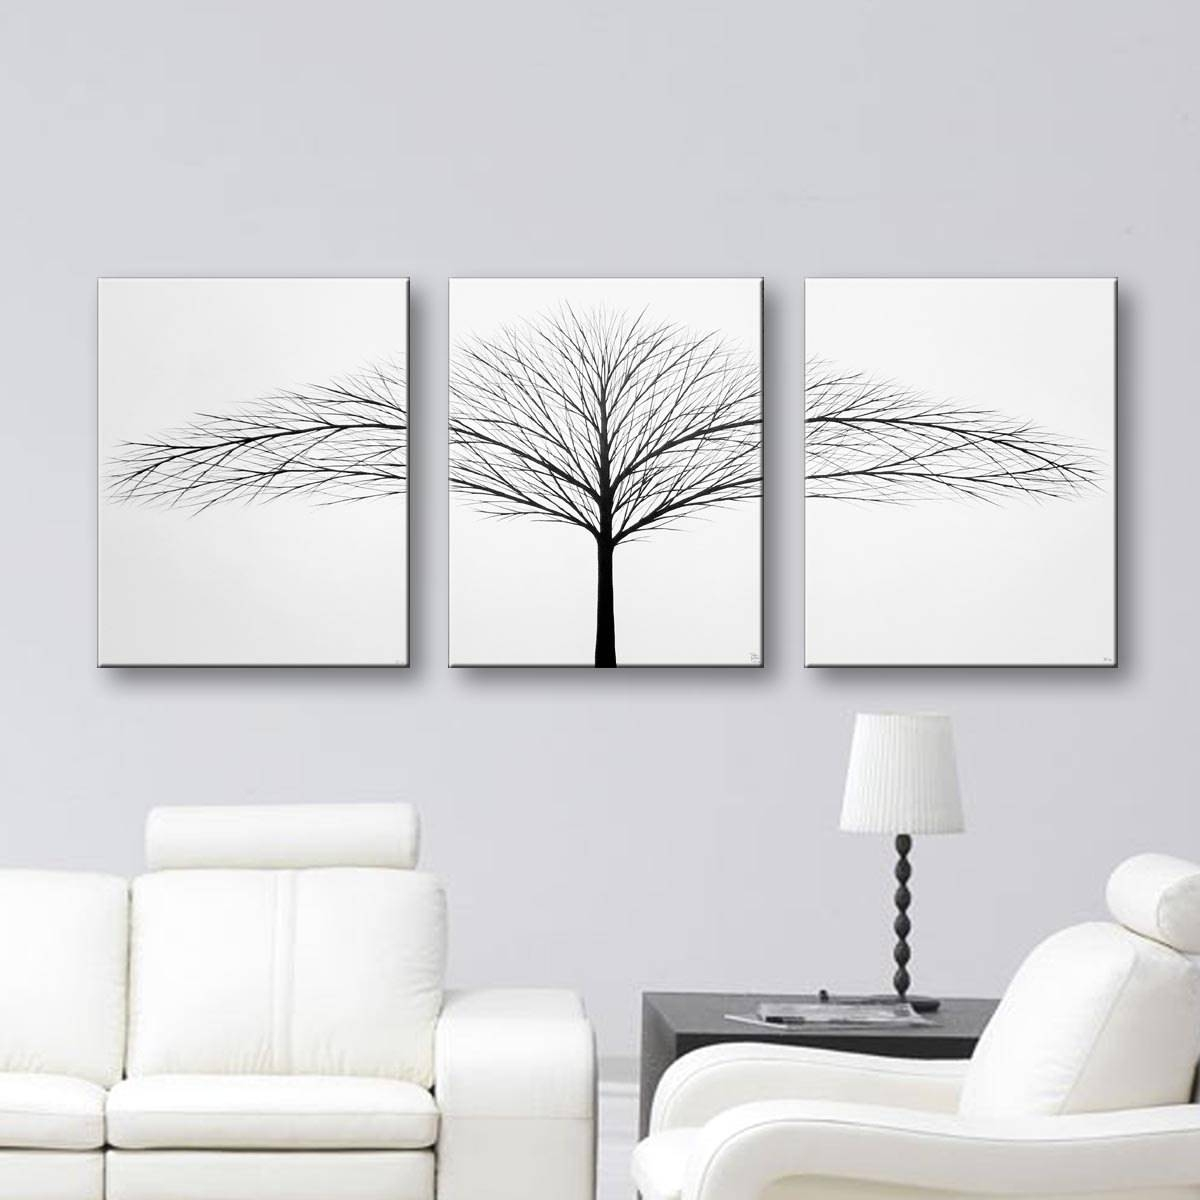 Bedroom Wall Decor 3 Piece Wall Art Canvas Art Minimalist In Latest Large Black And White Wall Art (View 5 of 20)